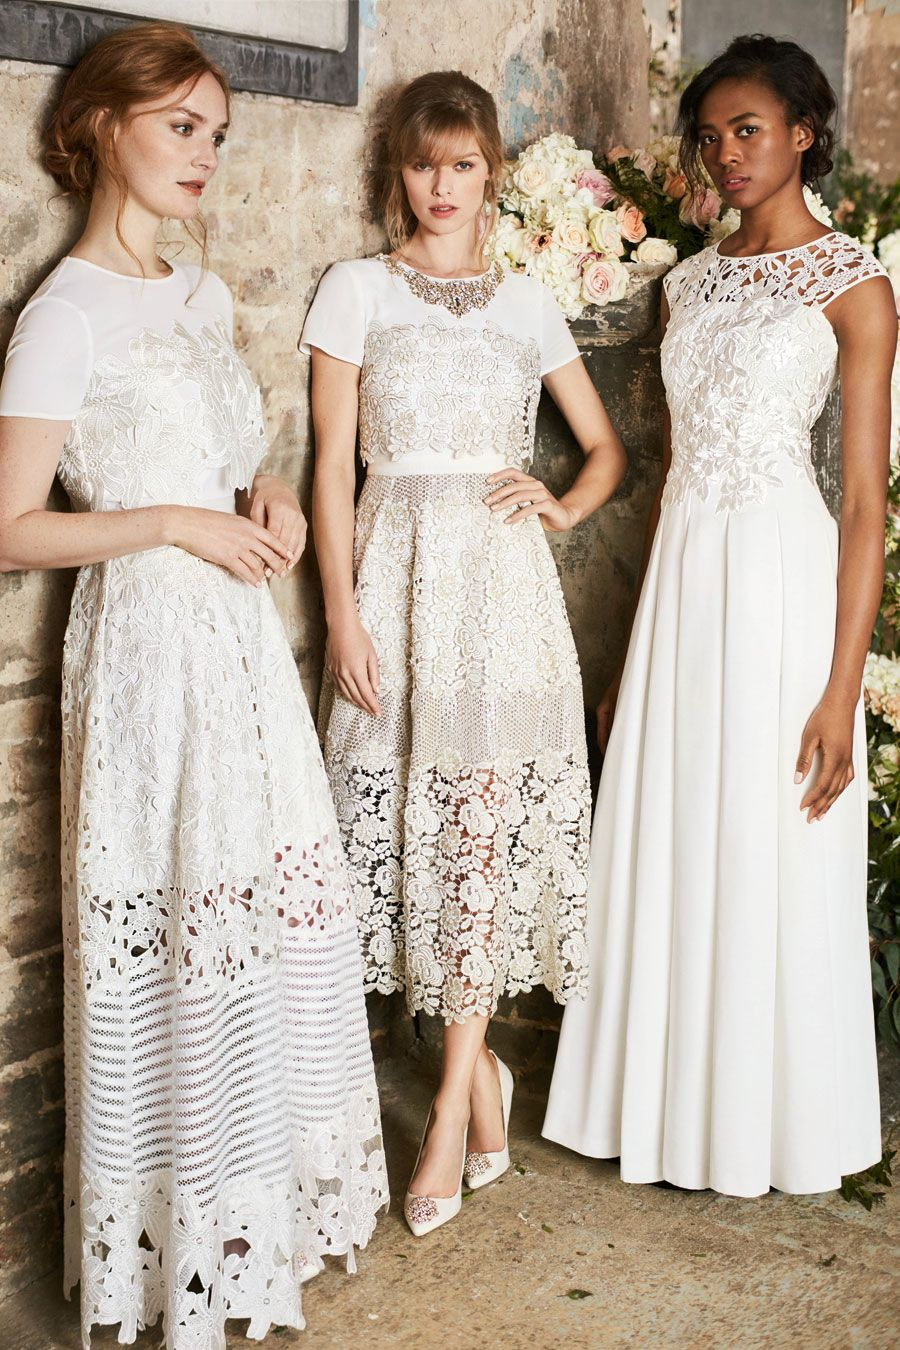 Wedwithted Exclusive Ted Baker Wedding Dress Capsule Collection For 2017 Ted Baker Wedding Dress Cheap Bridesmaid Dresses Stunning Bridesmaid Dresses